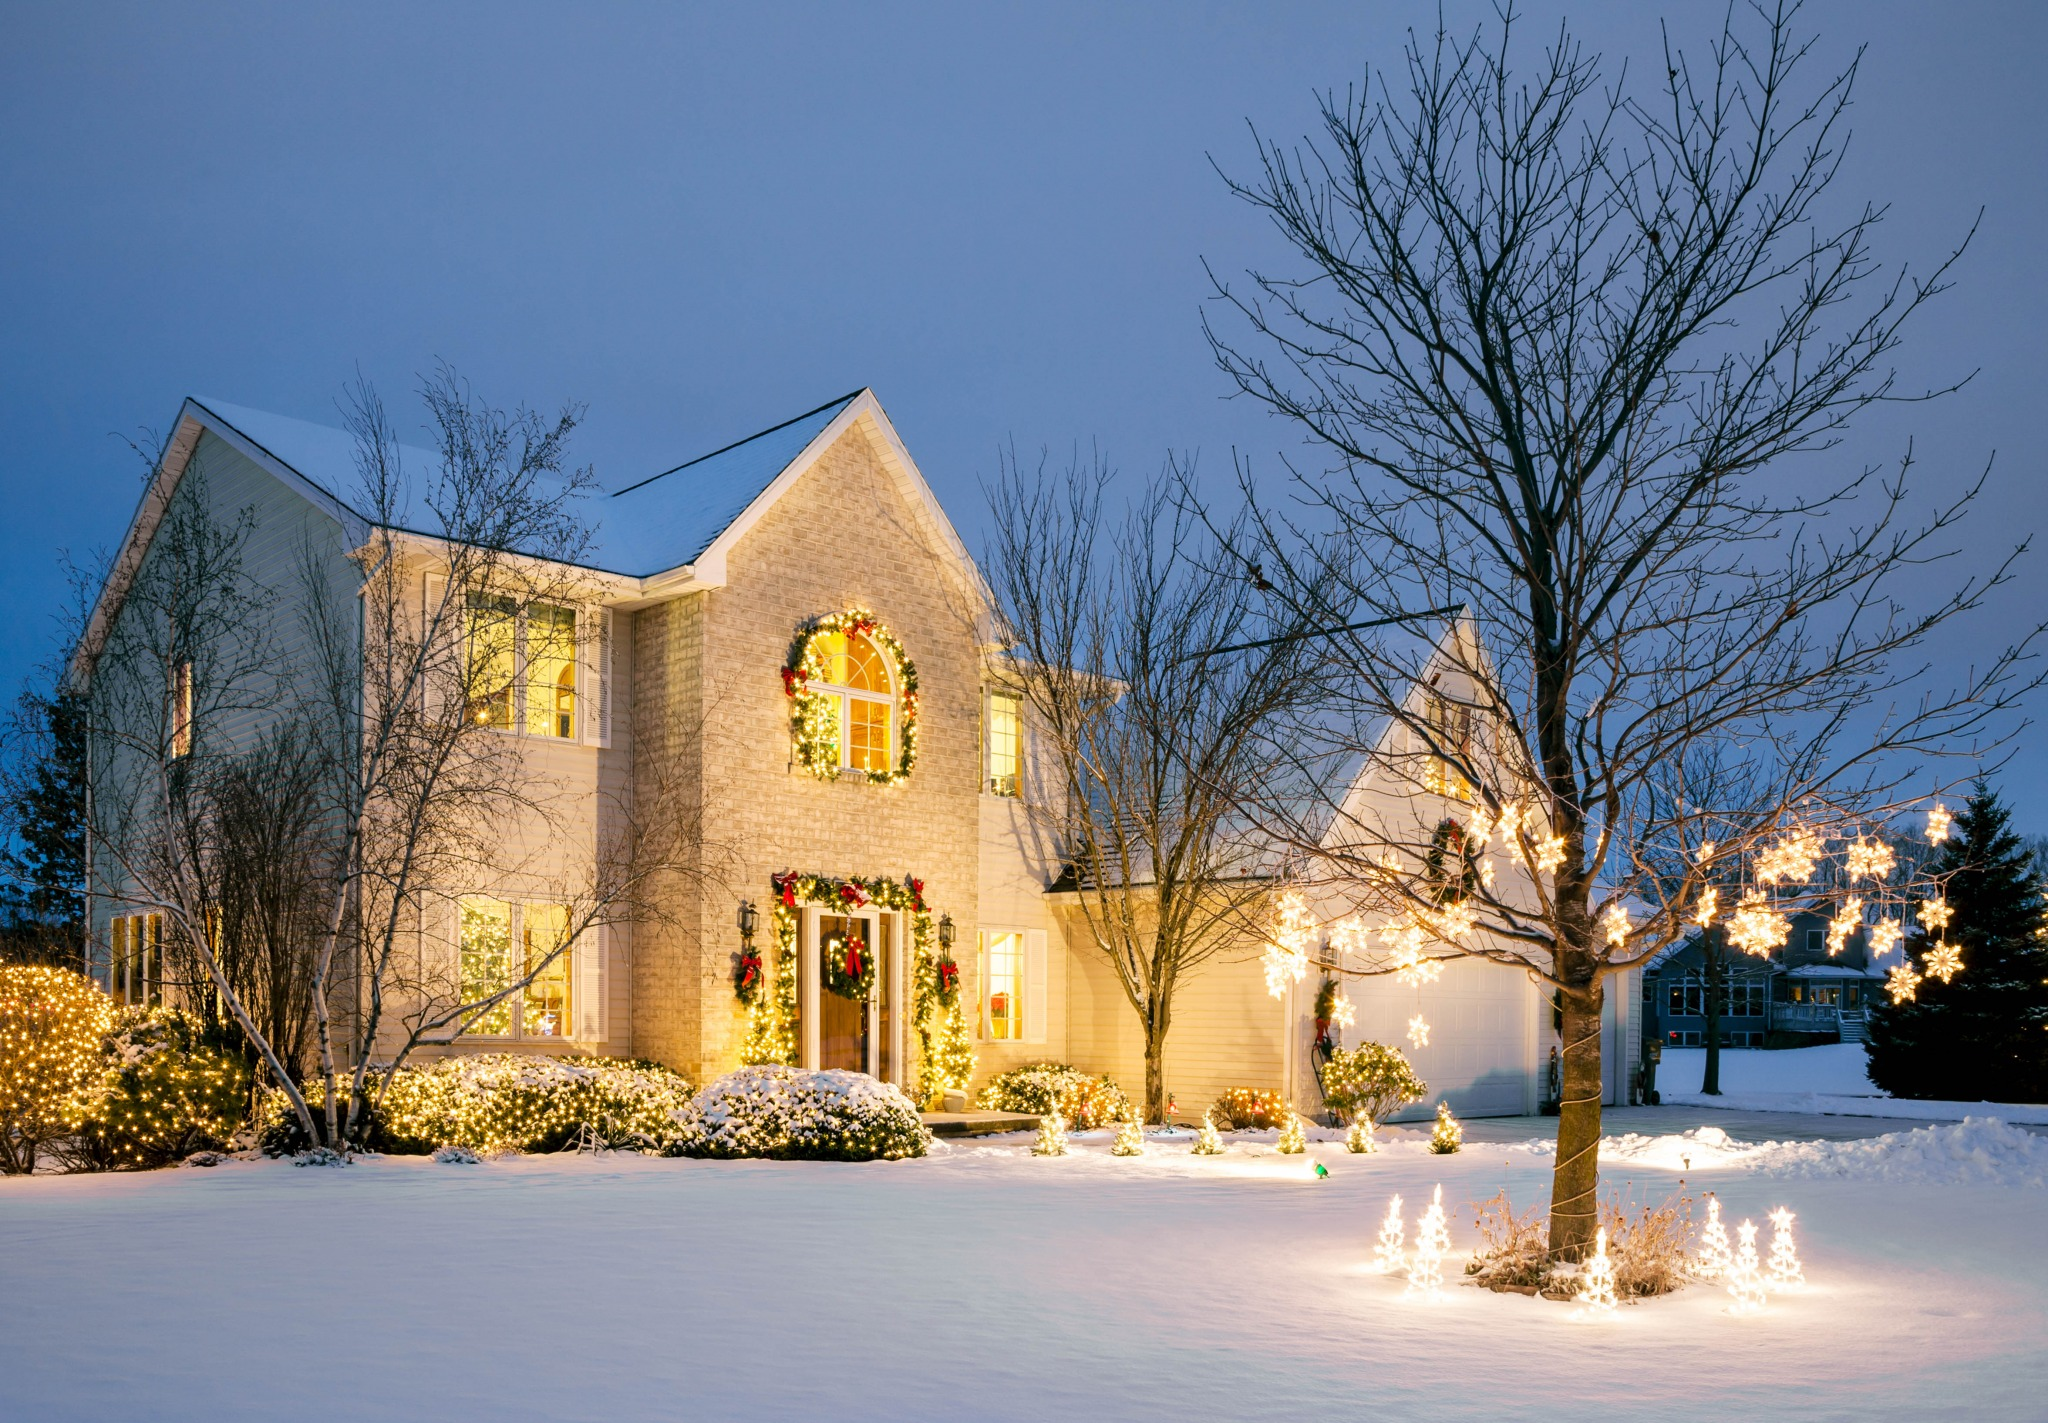 Festive Home for the Holidays